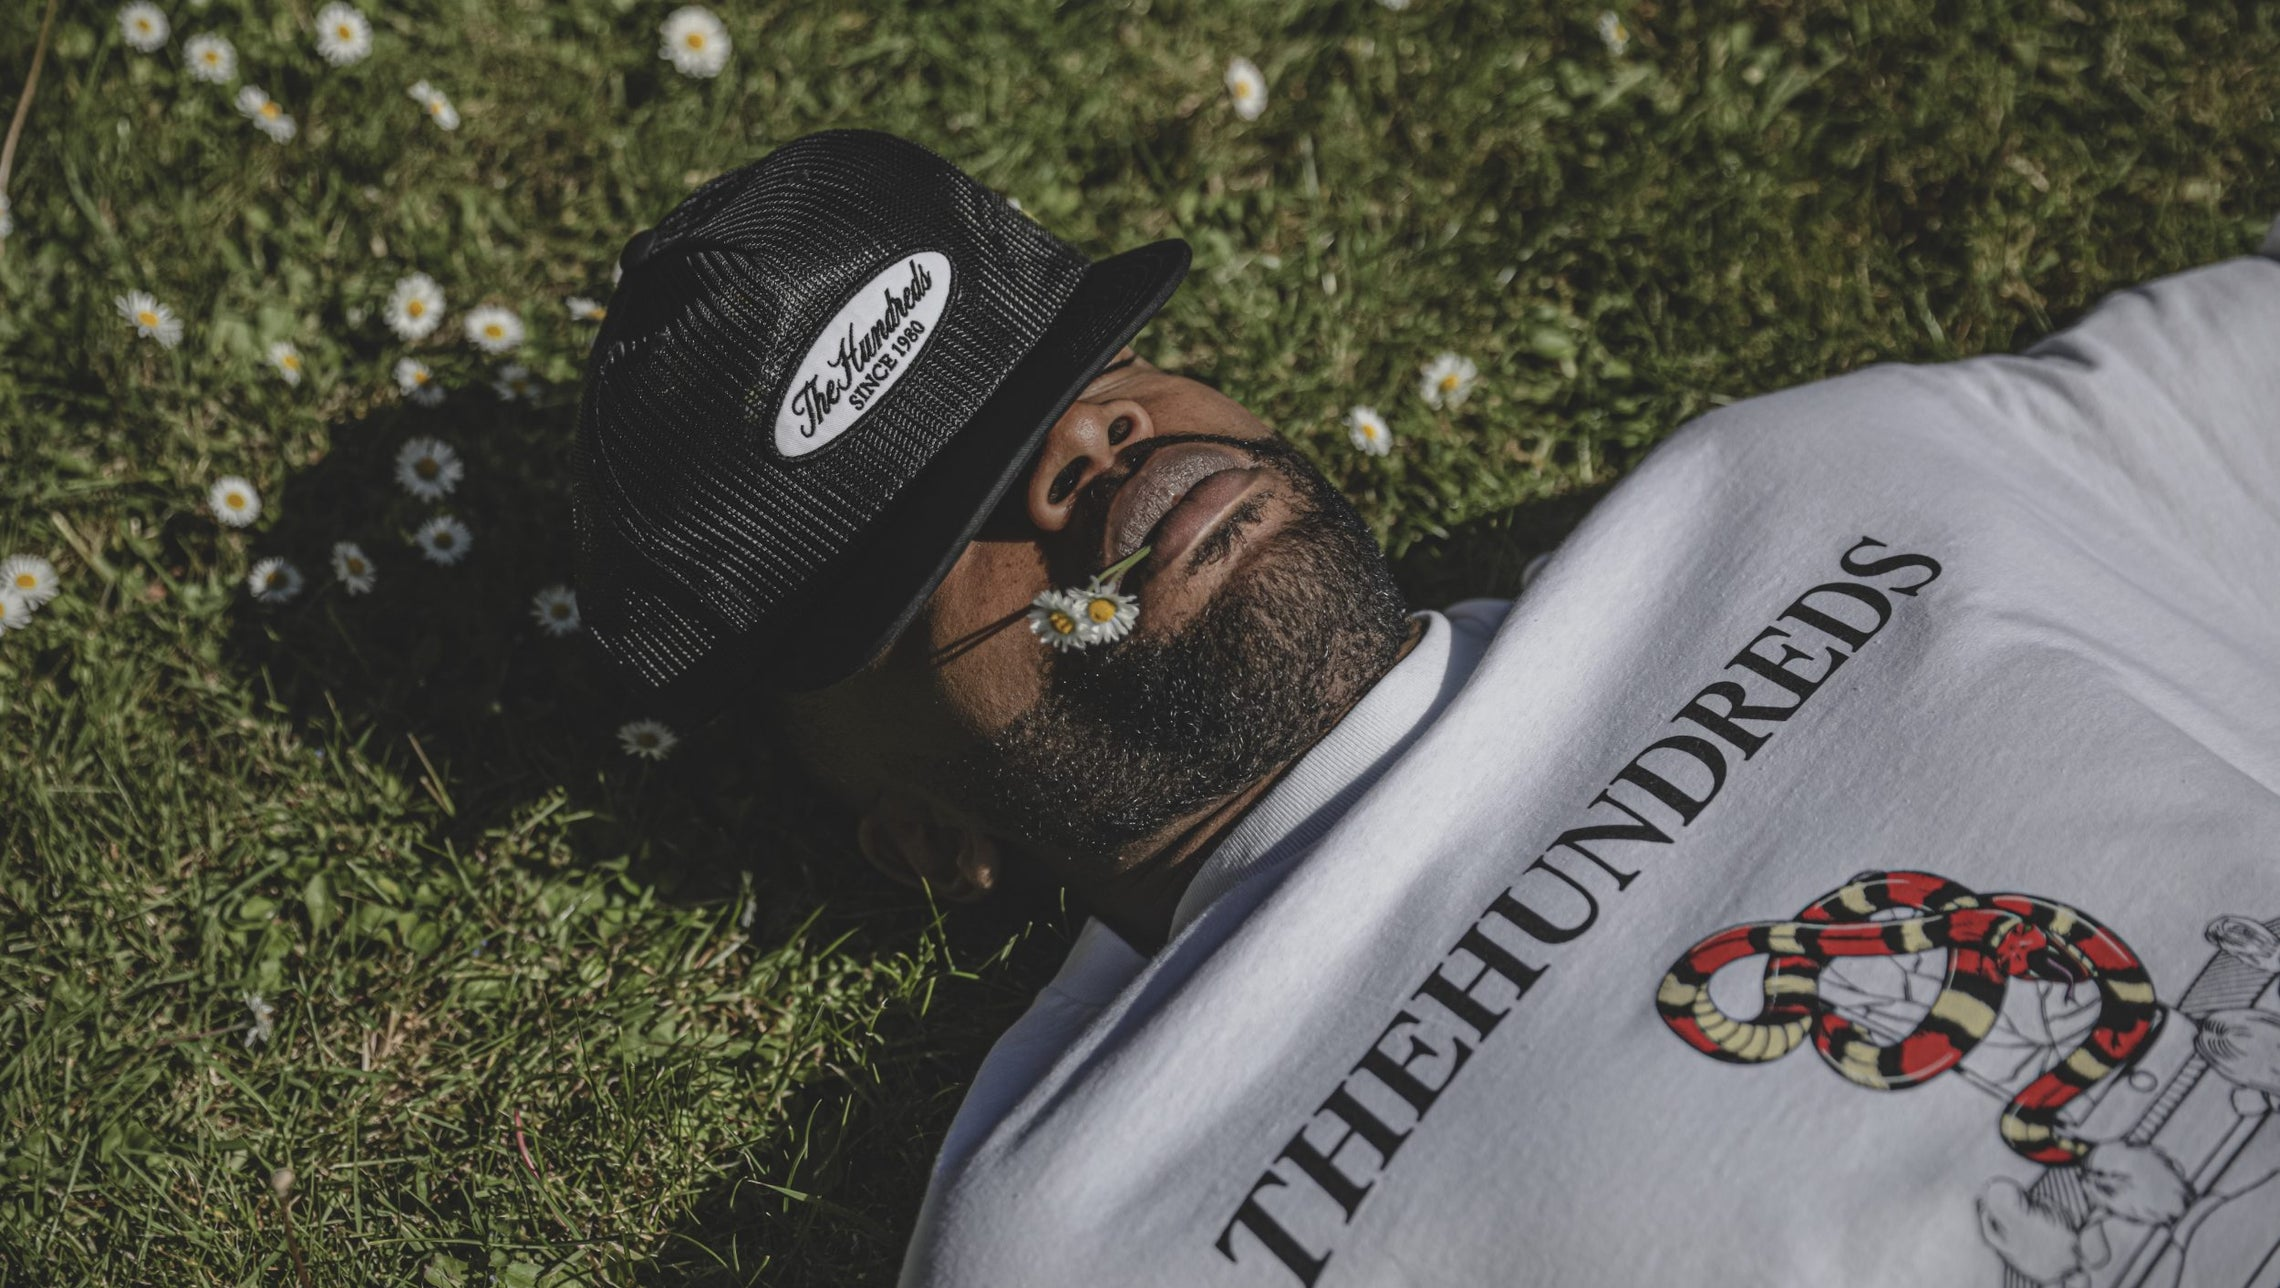 The Hundreds by Visionarism